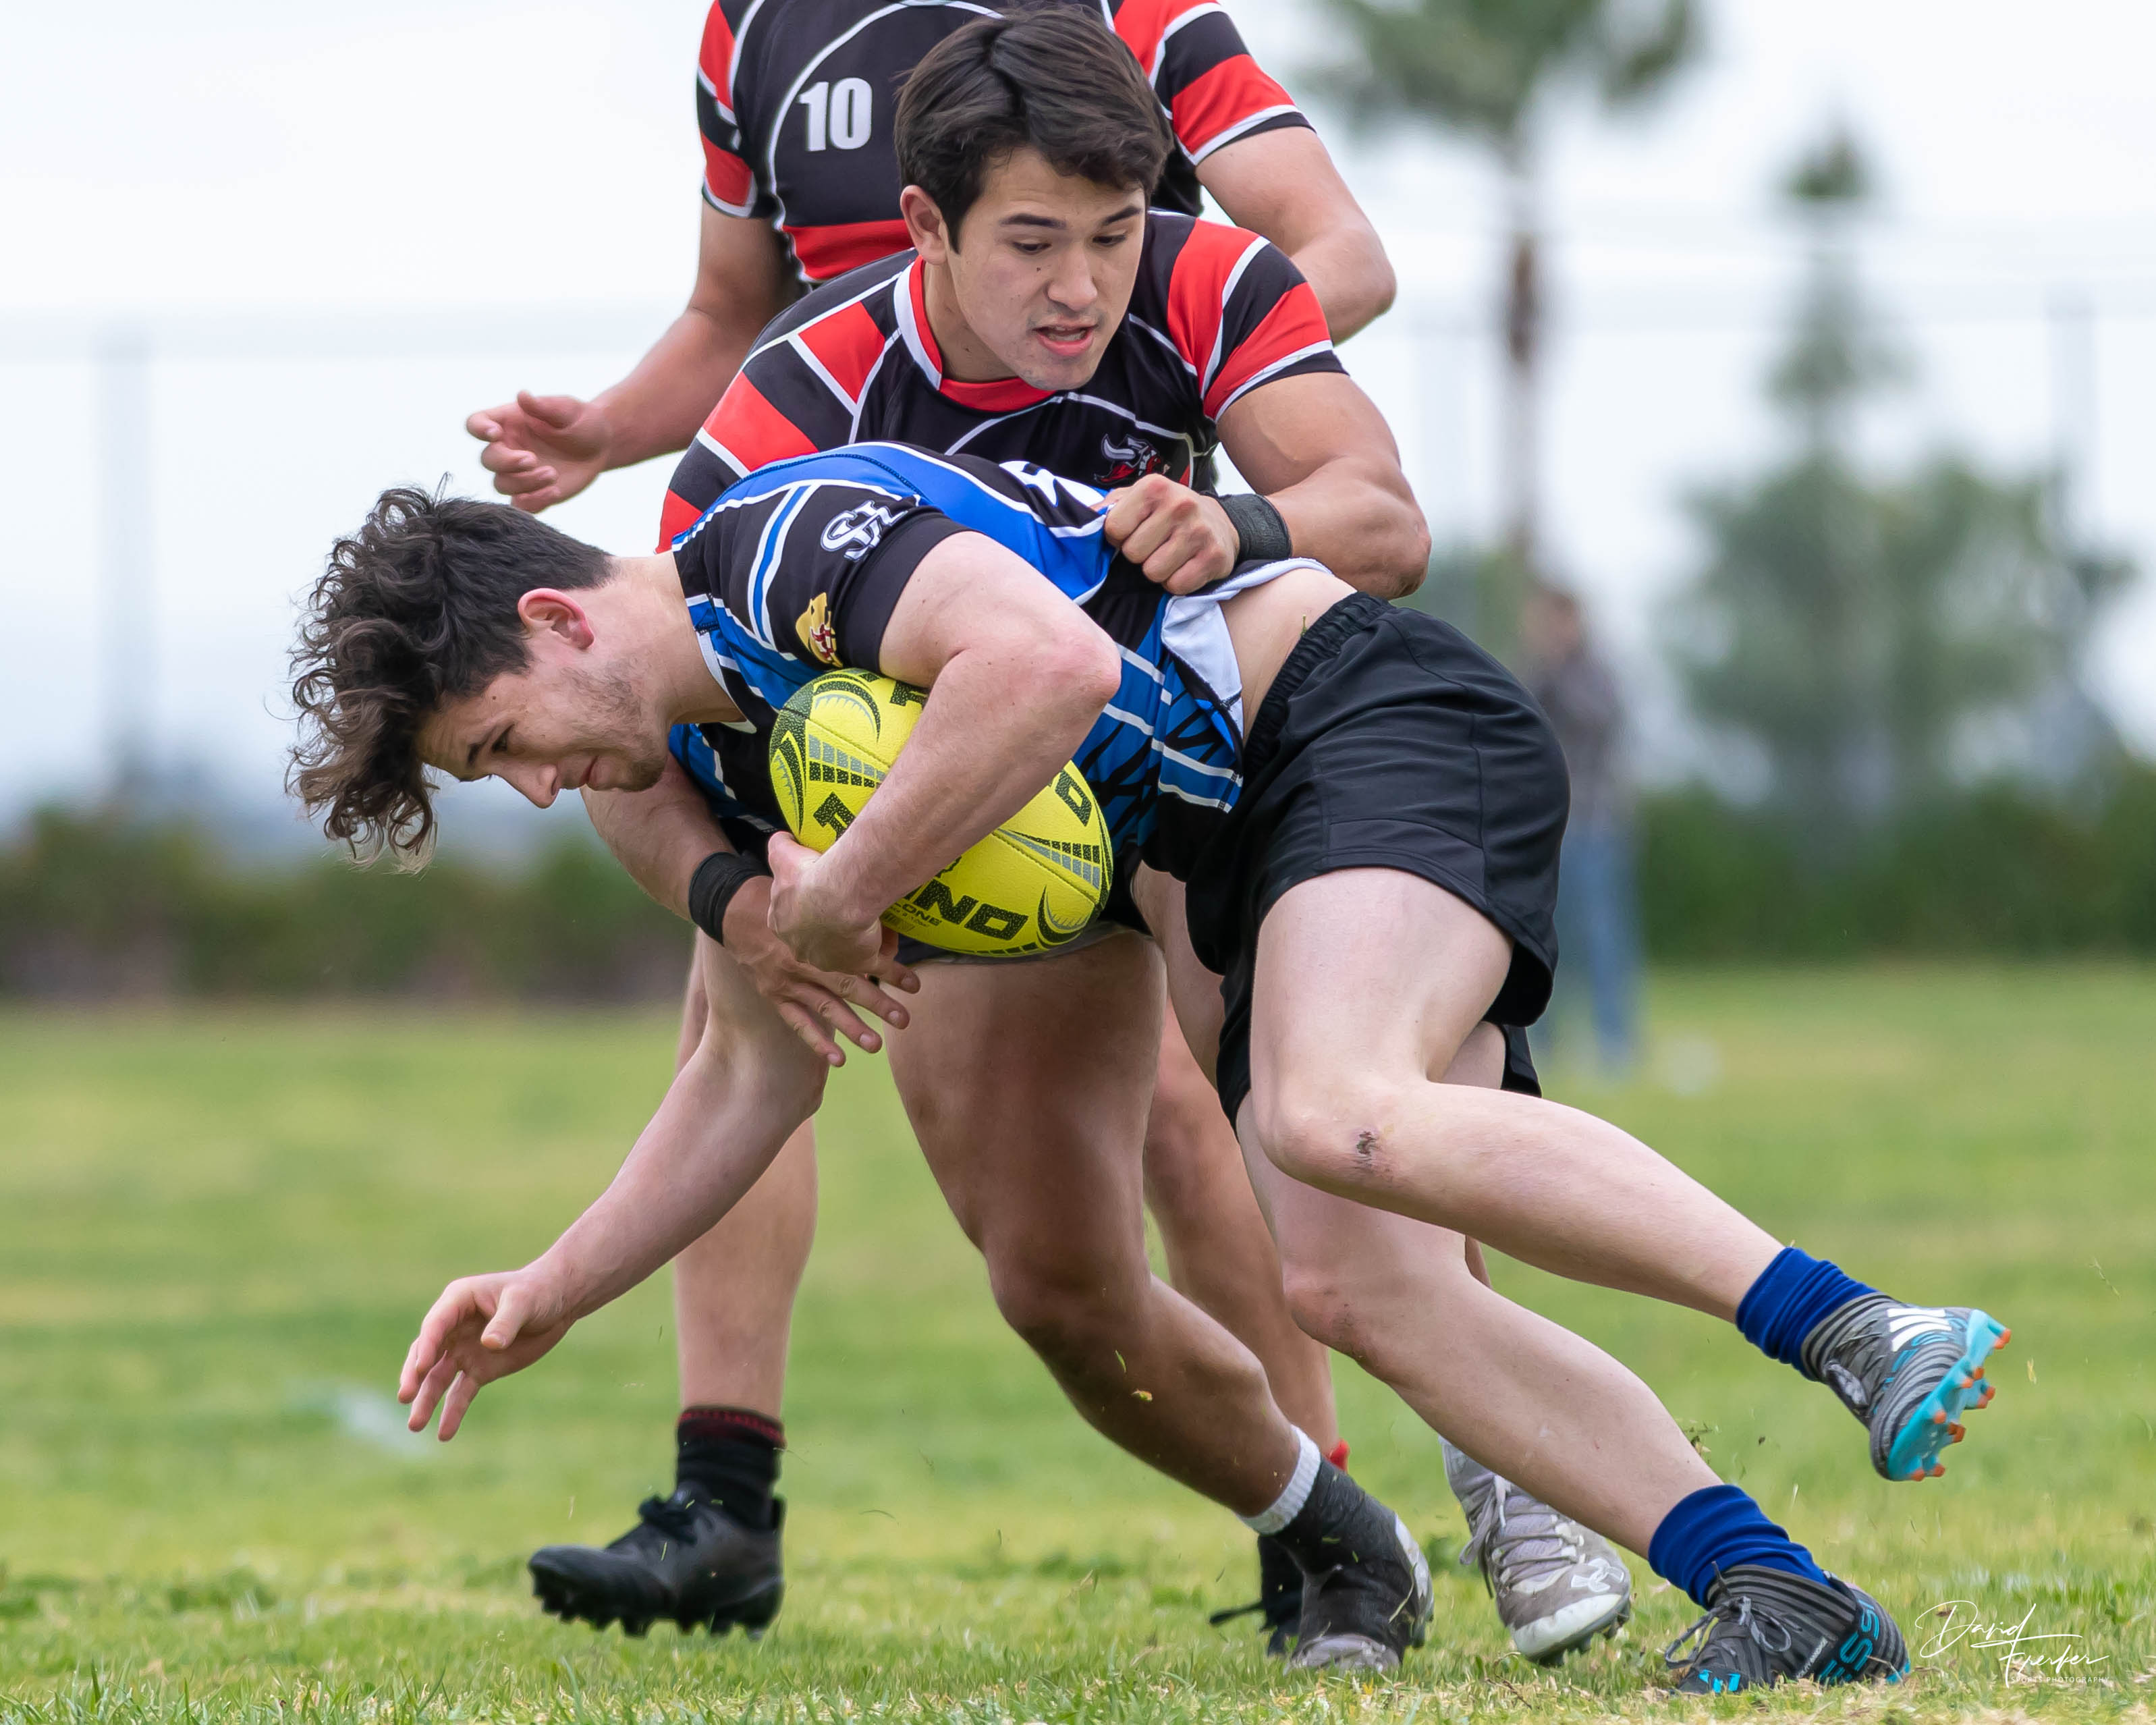 LaJollaRugby79